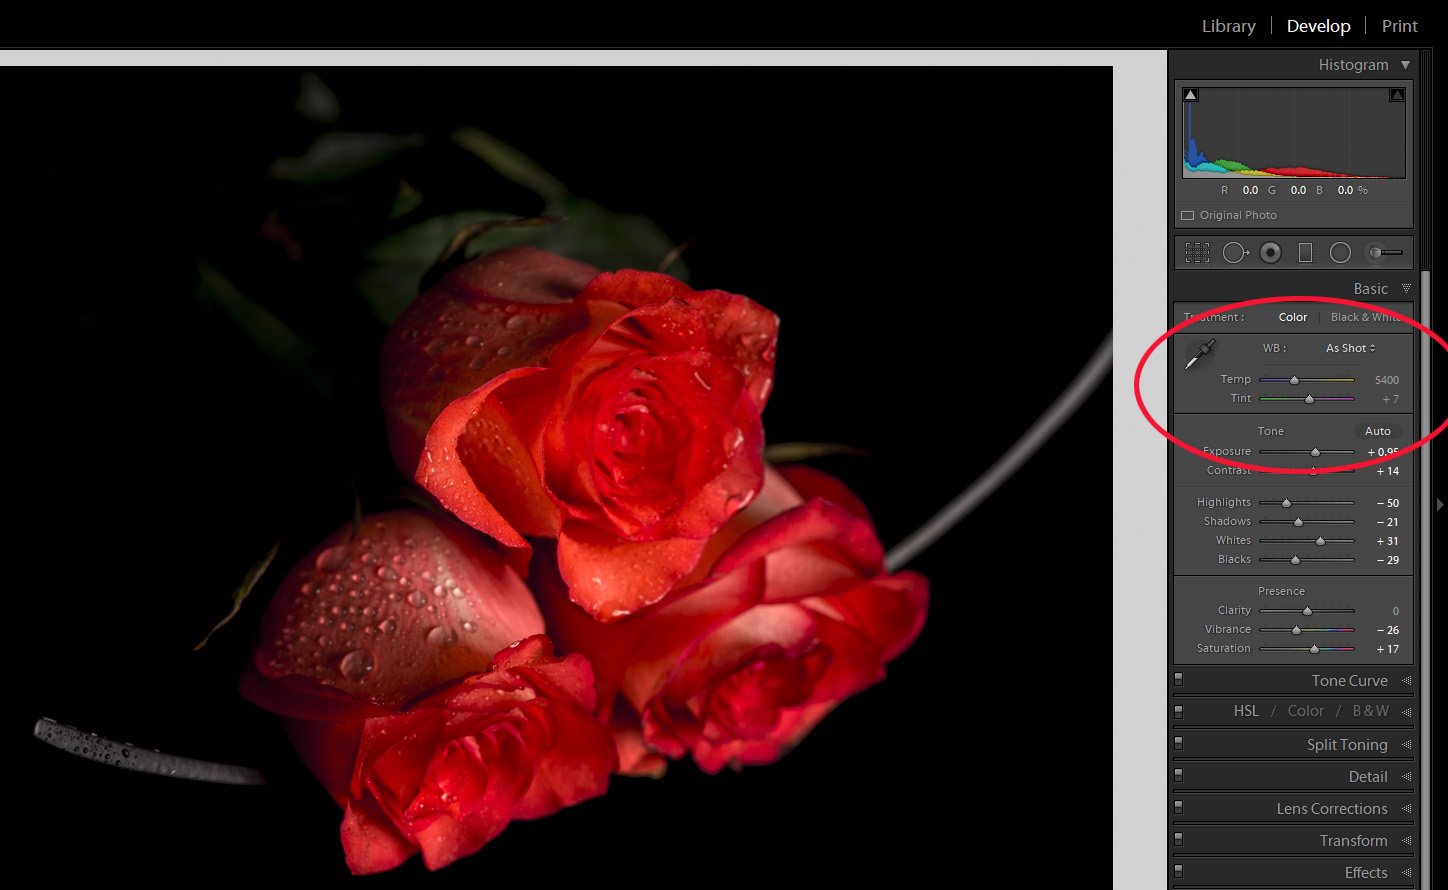 Same roses, same light source but my colour temp was set to 5400 kelvins